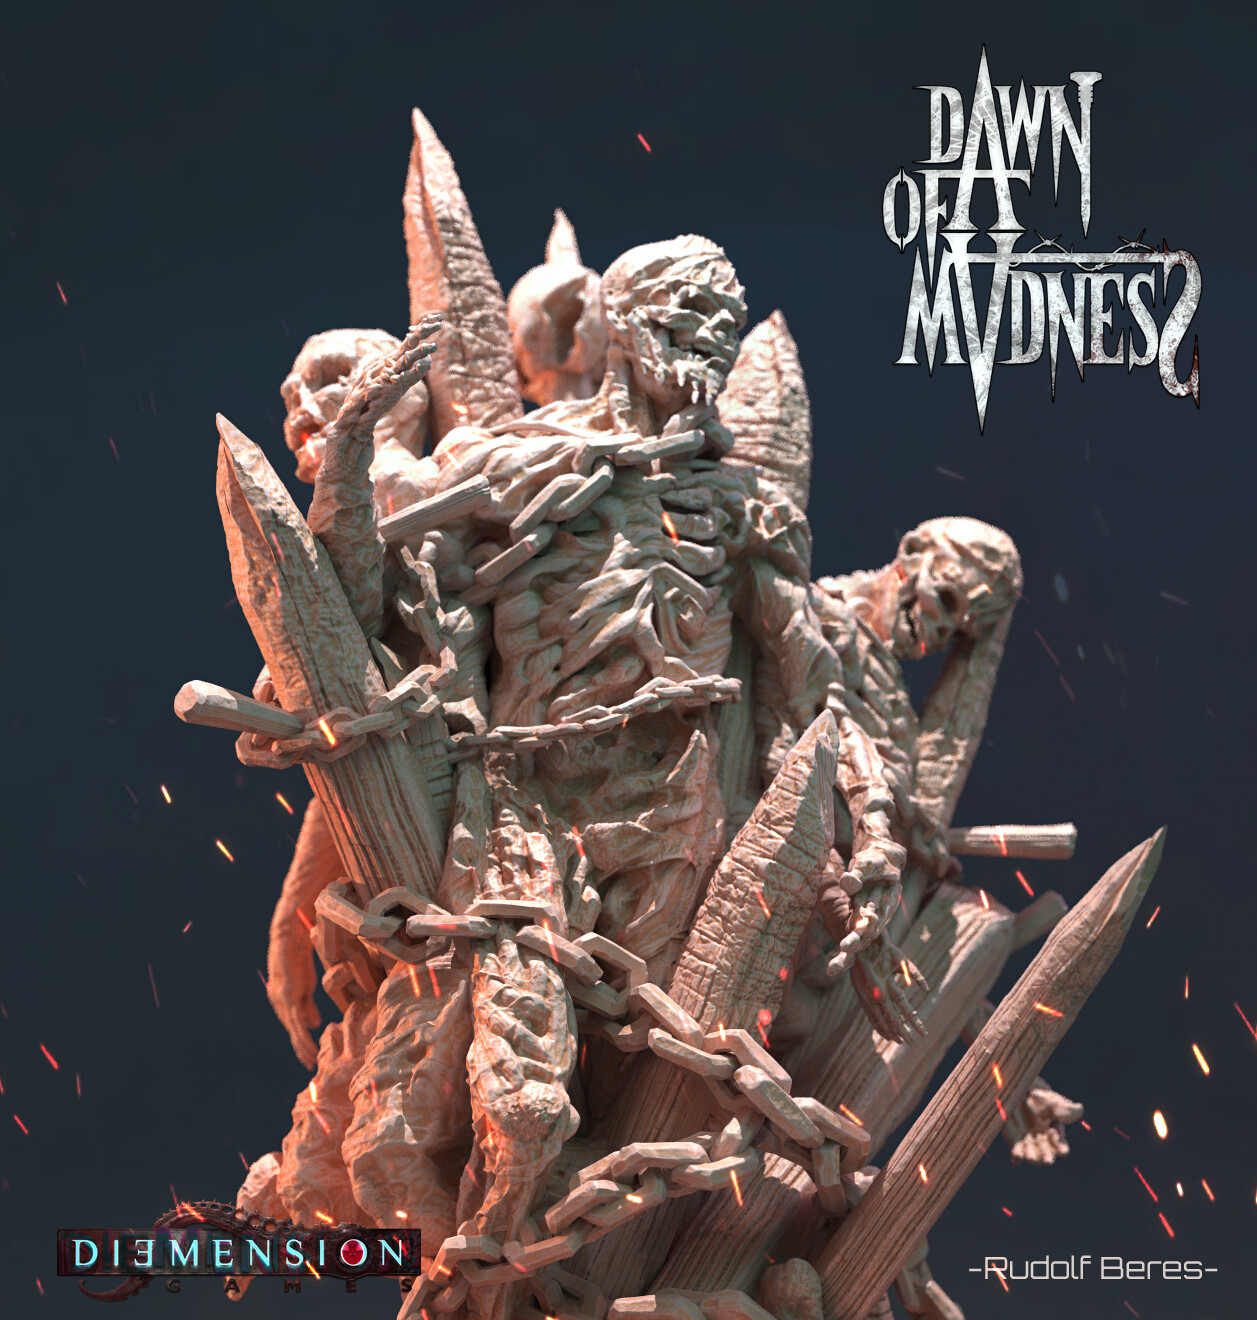 Dawn of Madness Fire punishment